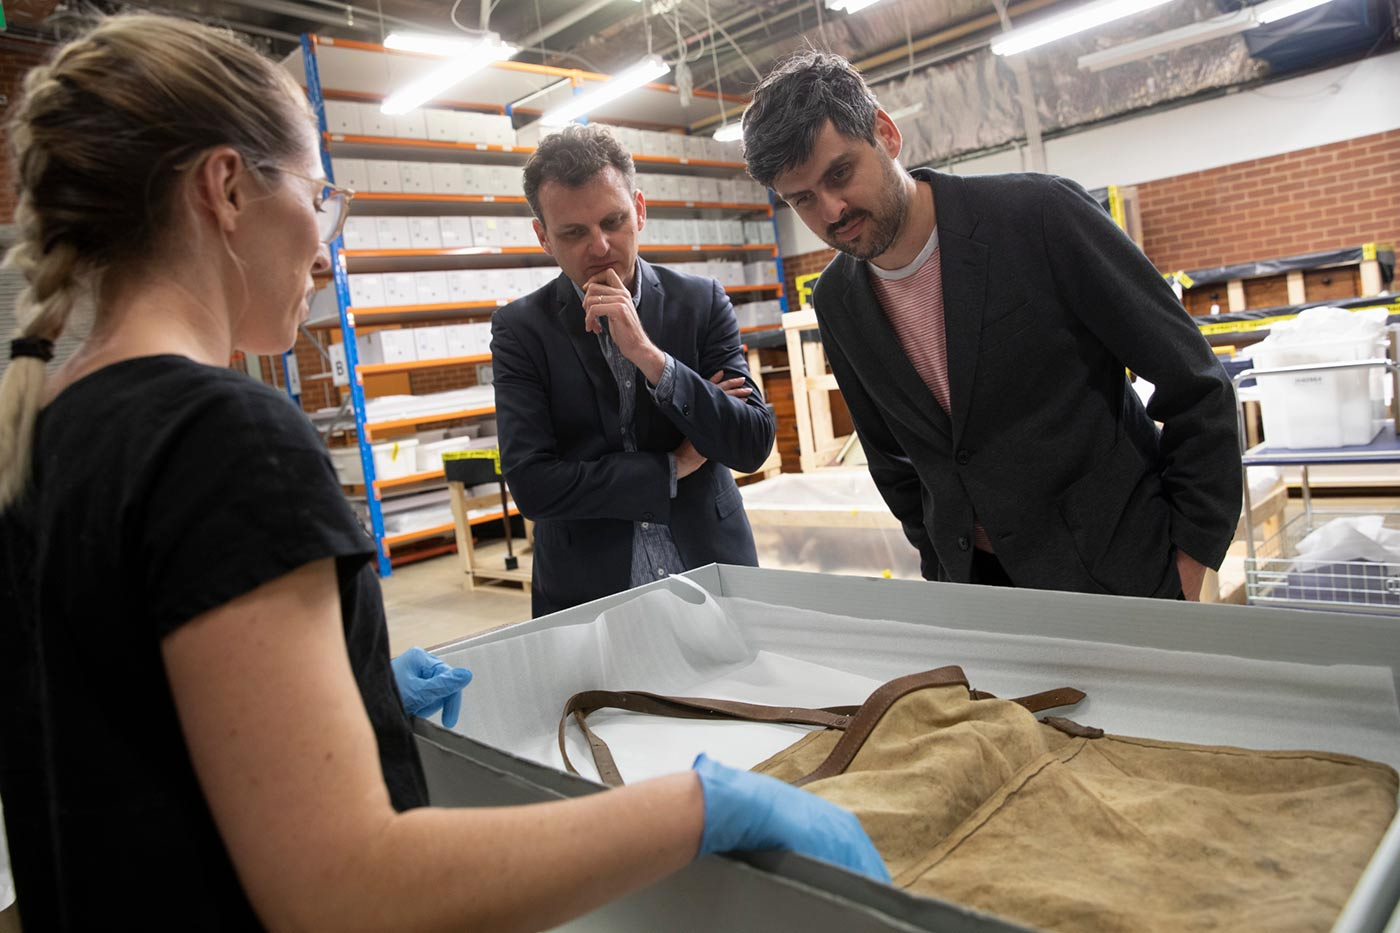 Slava and Leonard Grigoryan inspect an old apron displayed in a conservation box that is presented by a female staff member.